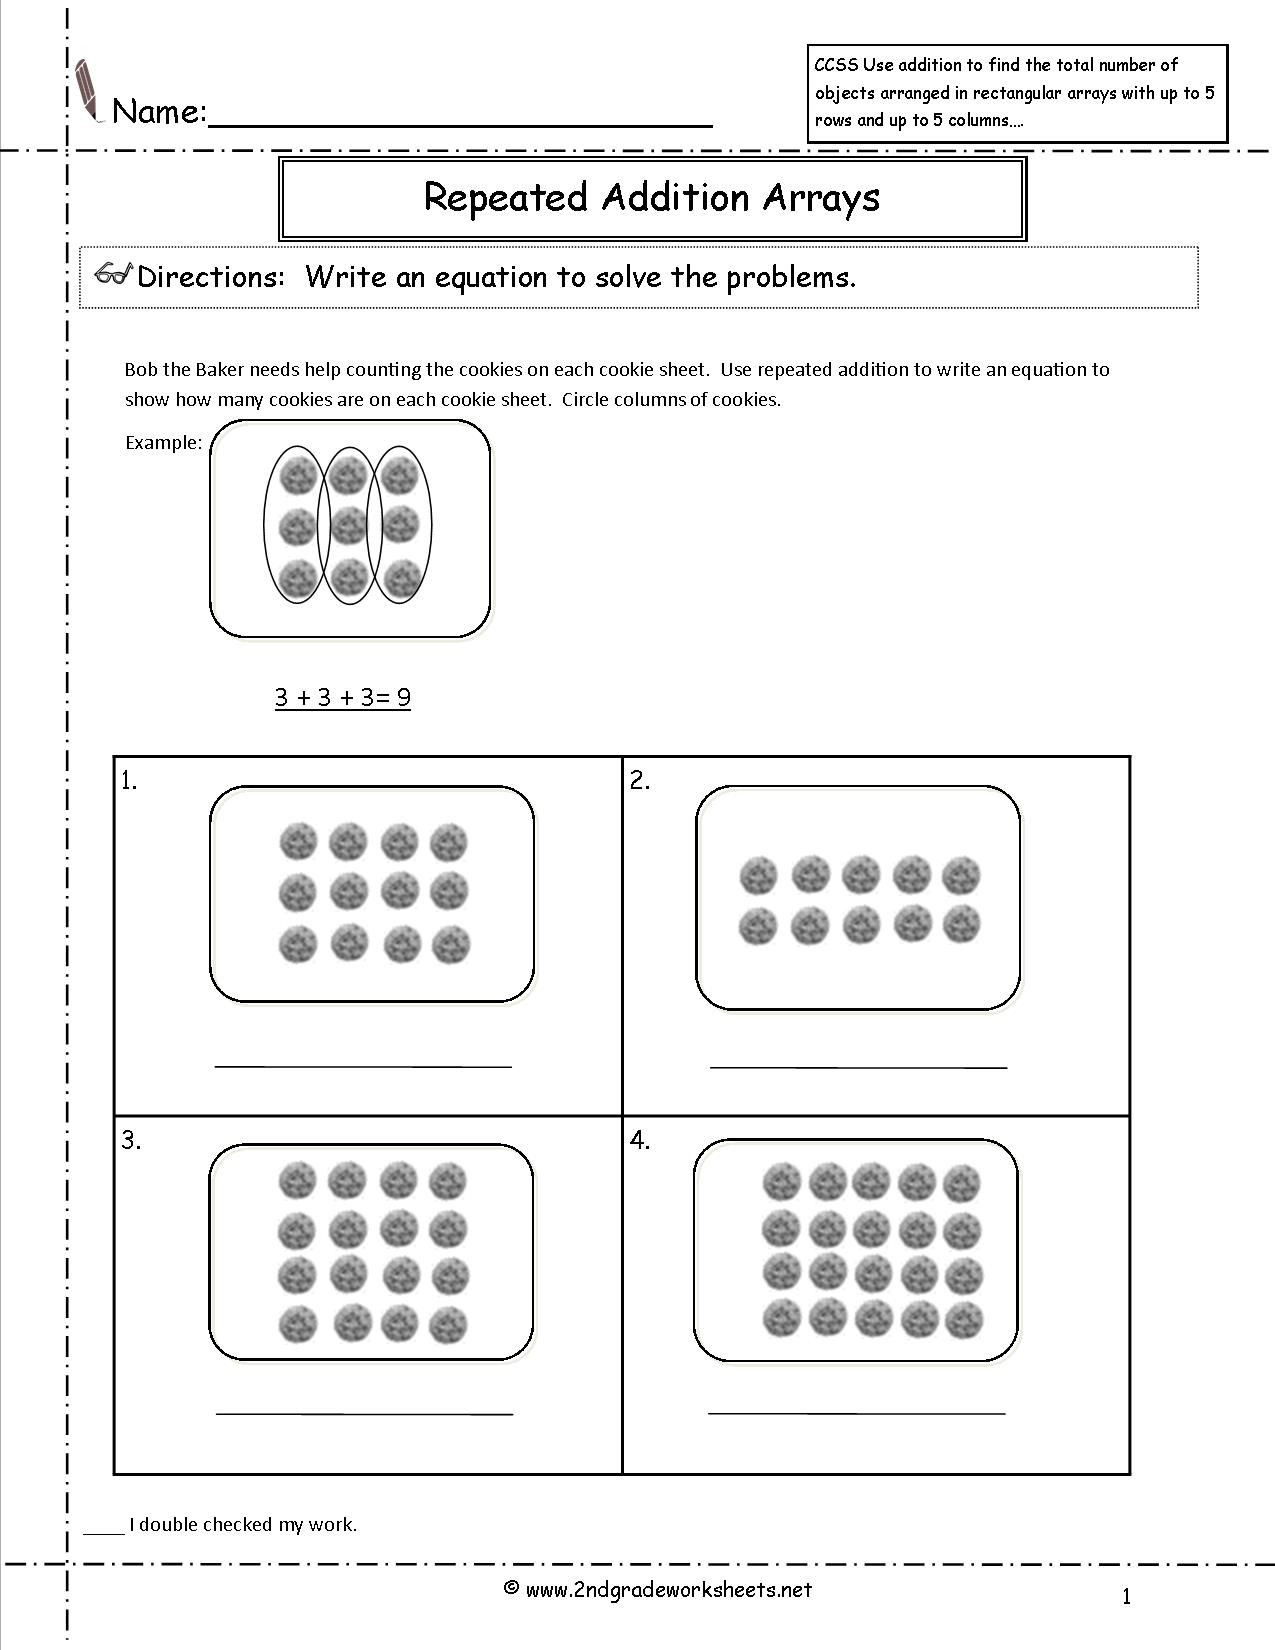 Array Worksheets for 2nd Graders Arrays 2nd Grade Google Search